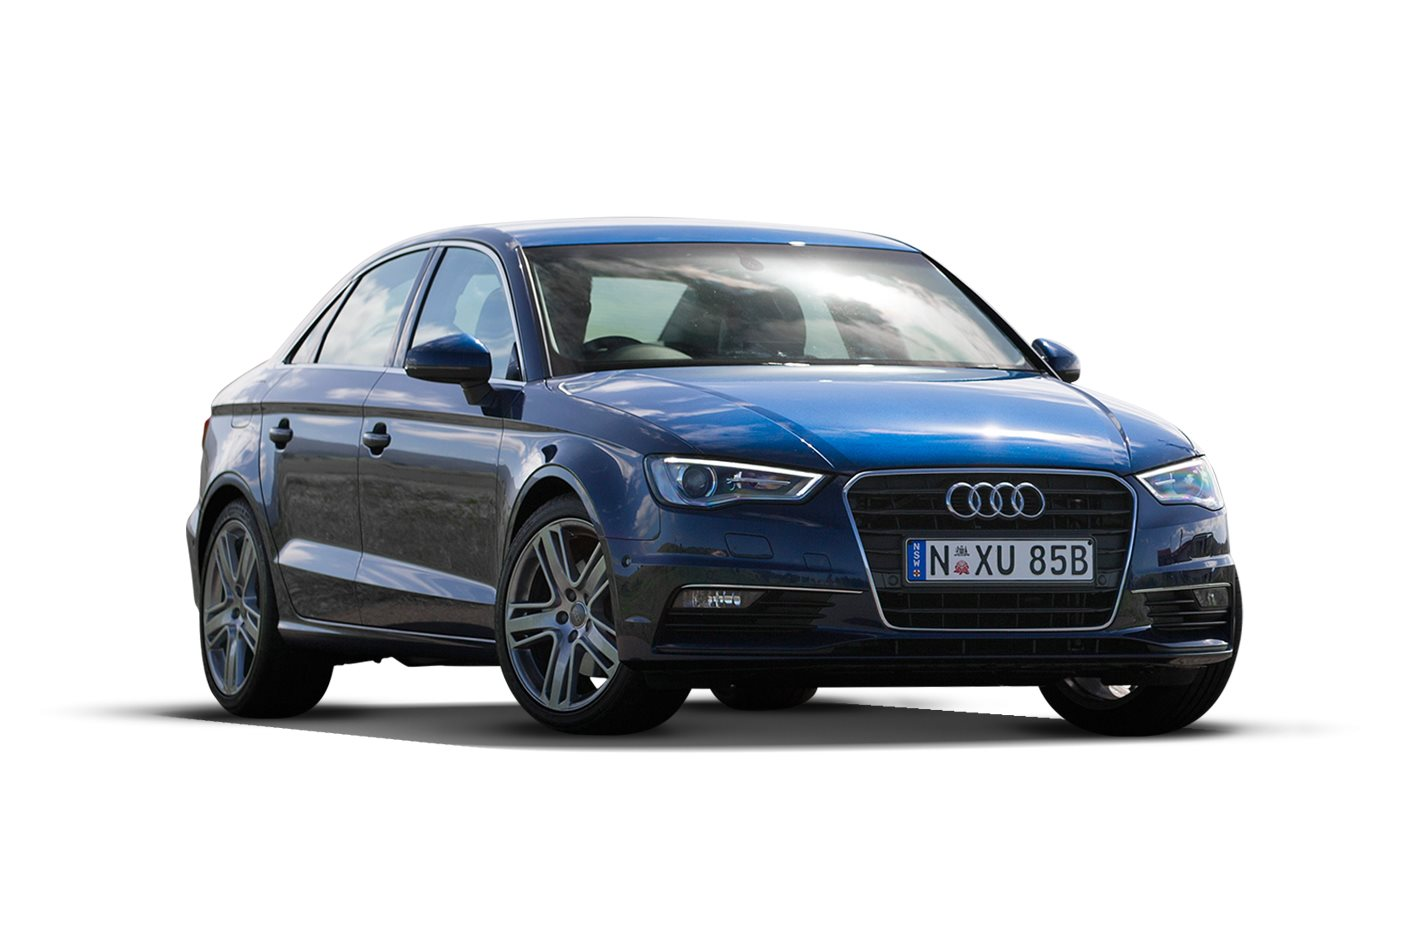 en abt underlines classy with five symbolises double heck the ease stability spokes silhouette sportsline movement power tuning audi and von dynamisch of impression